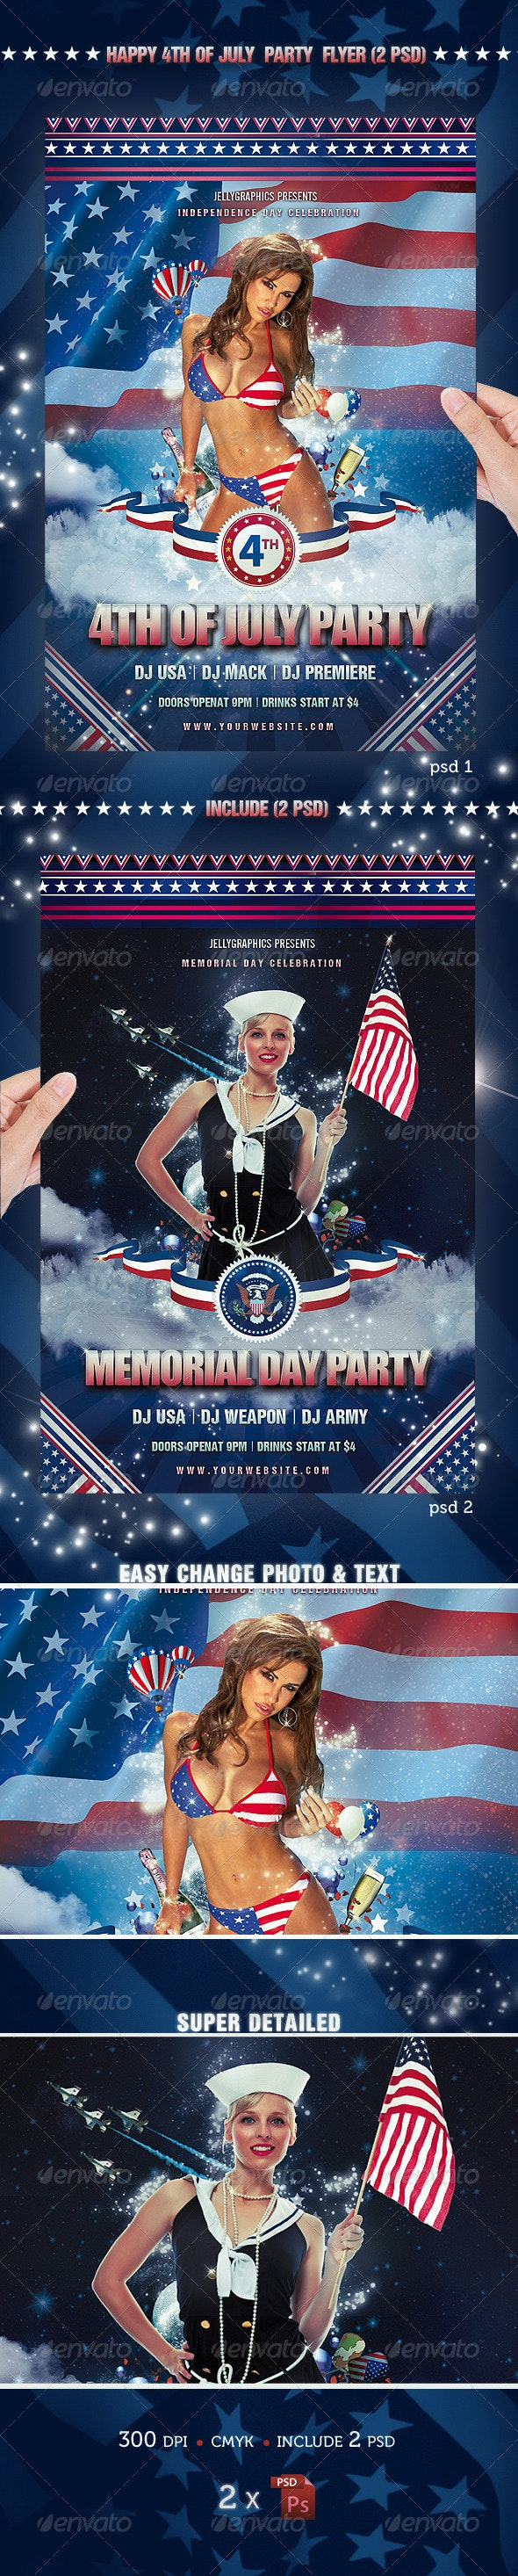 4th Of July Party Flyer Template - Flyers Print Templates